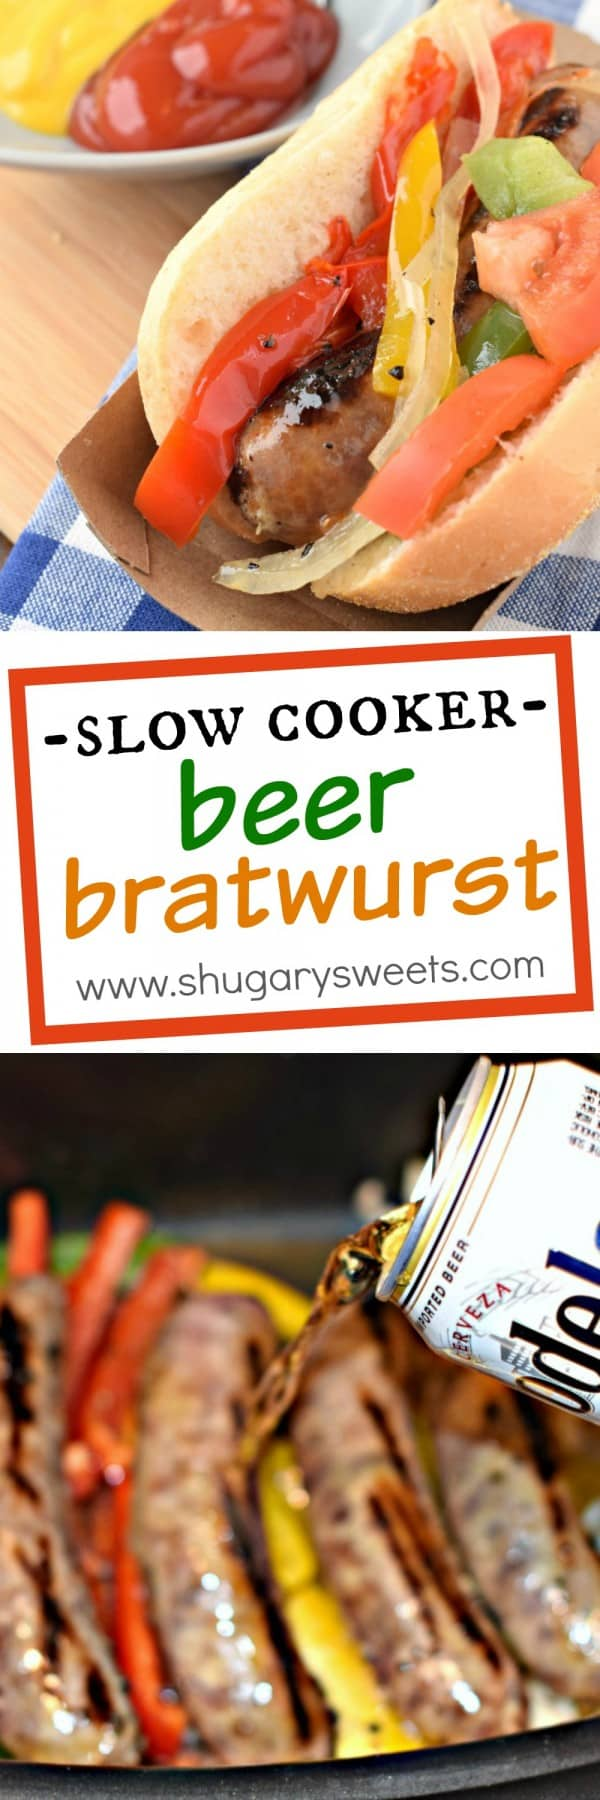 how to cook bratwurst on the stove with beer